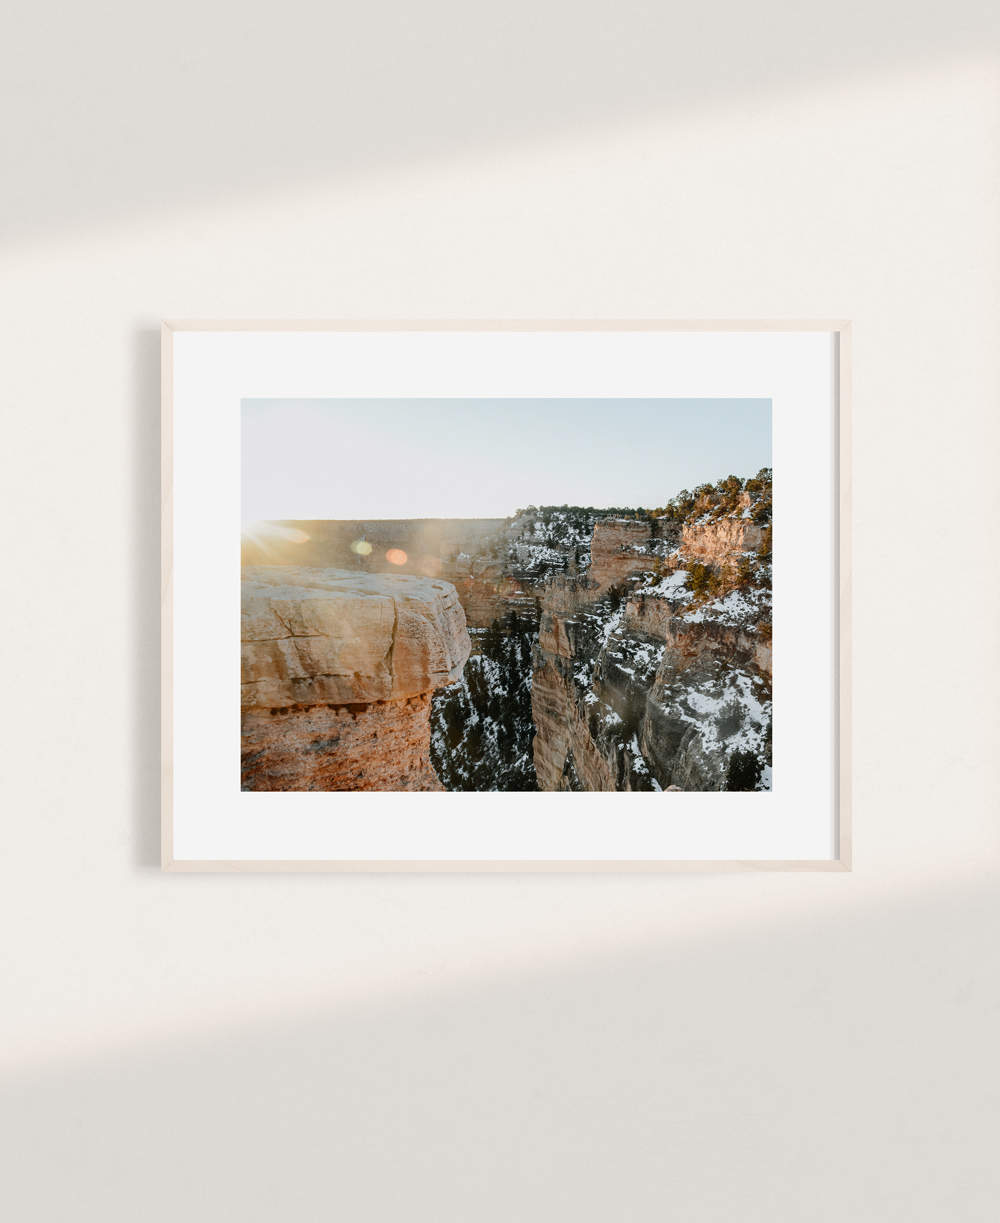 nicischwab-prints-012-grand canyon